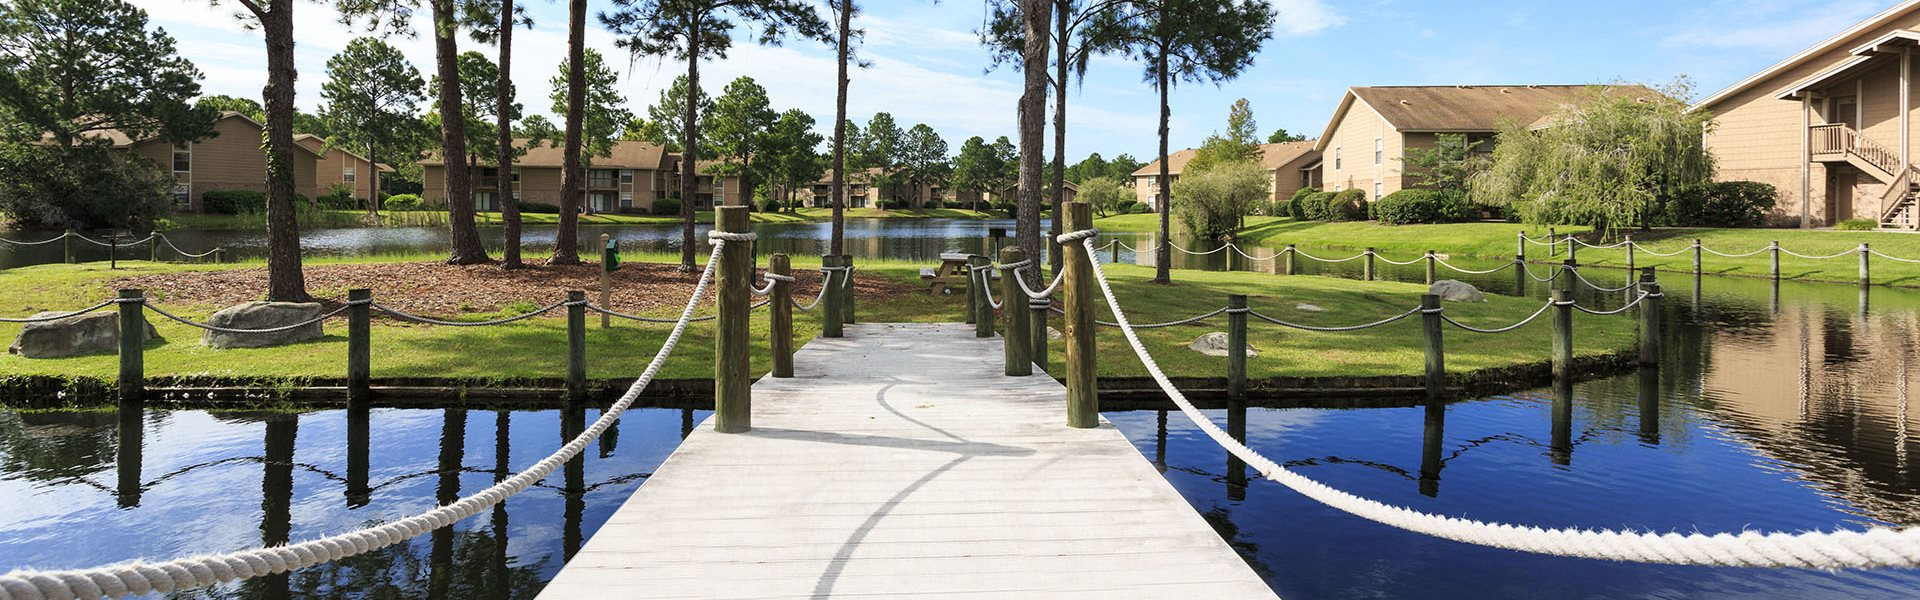 Whisper Lake apartments in winter park, orlando , florida  32792 walkway to bbq island